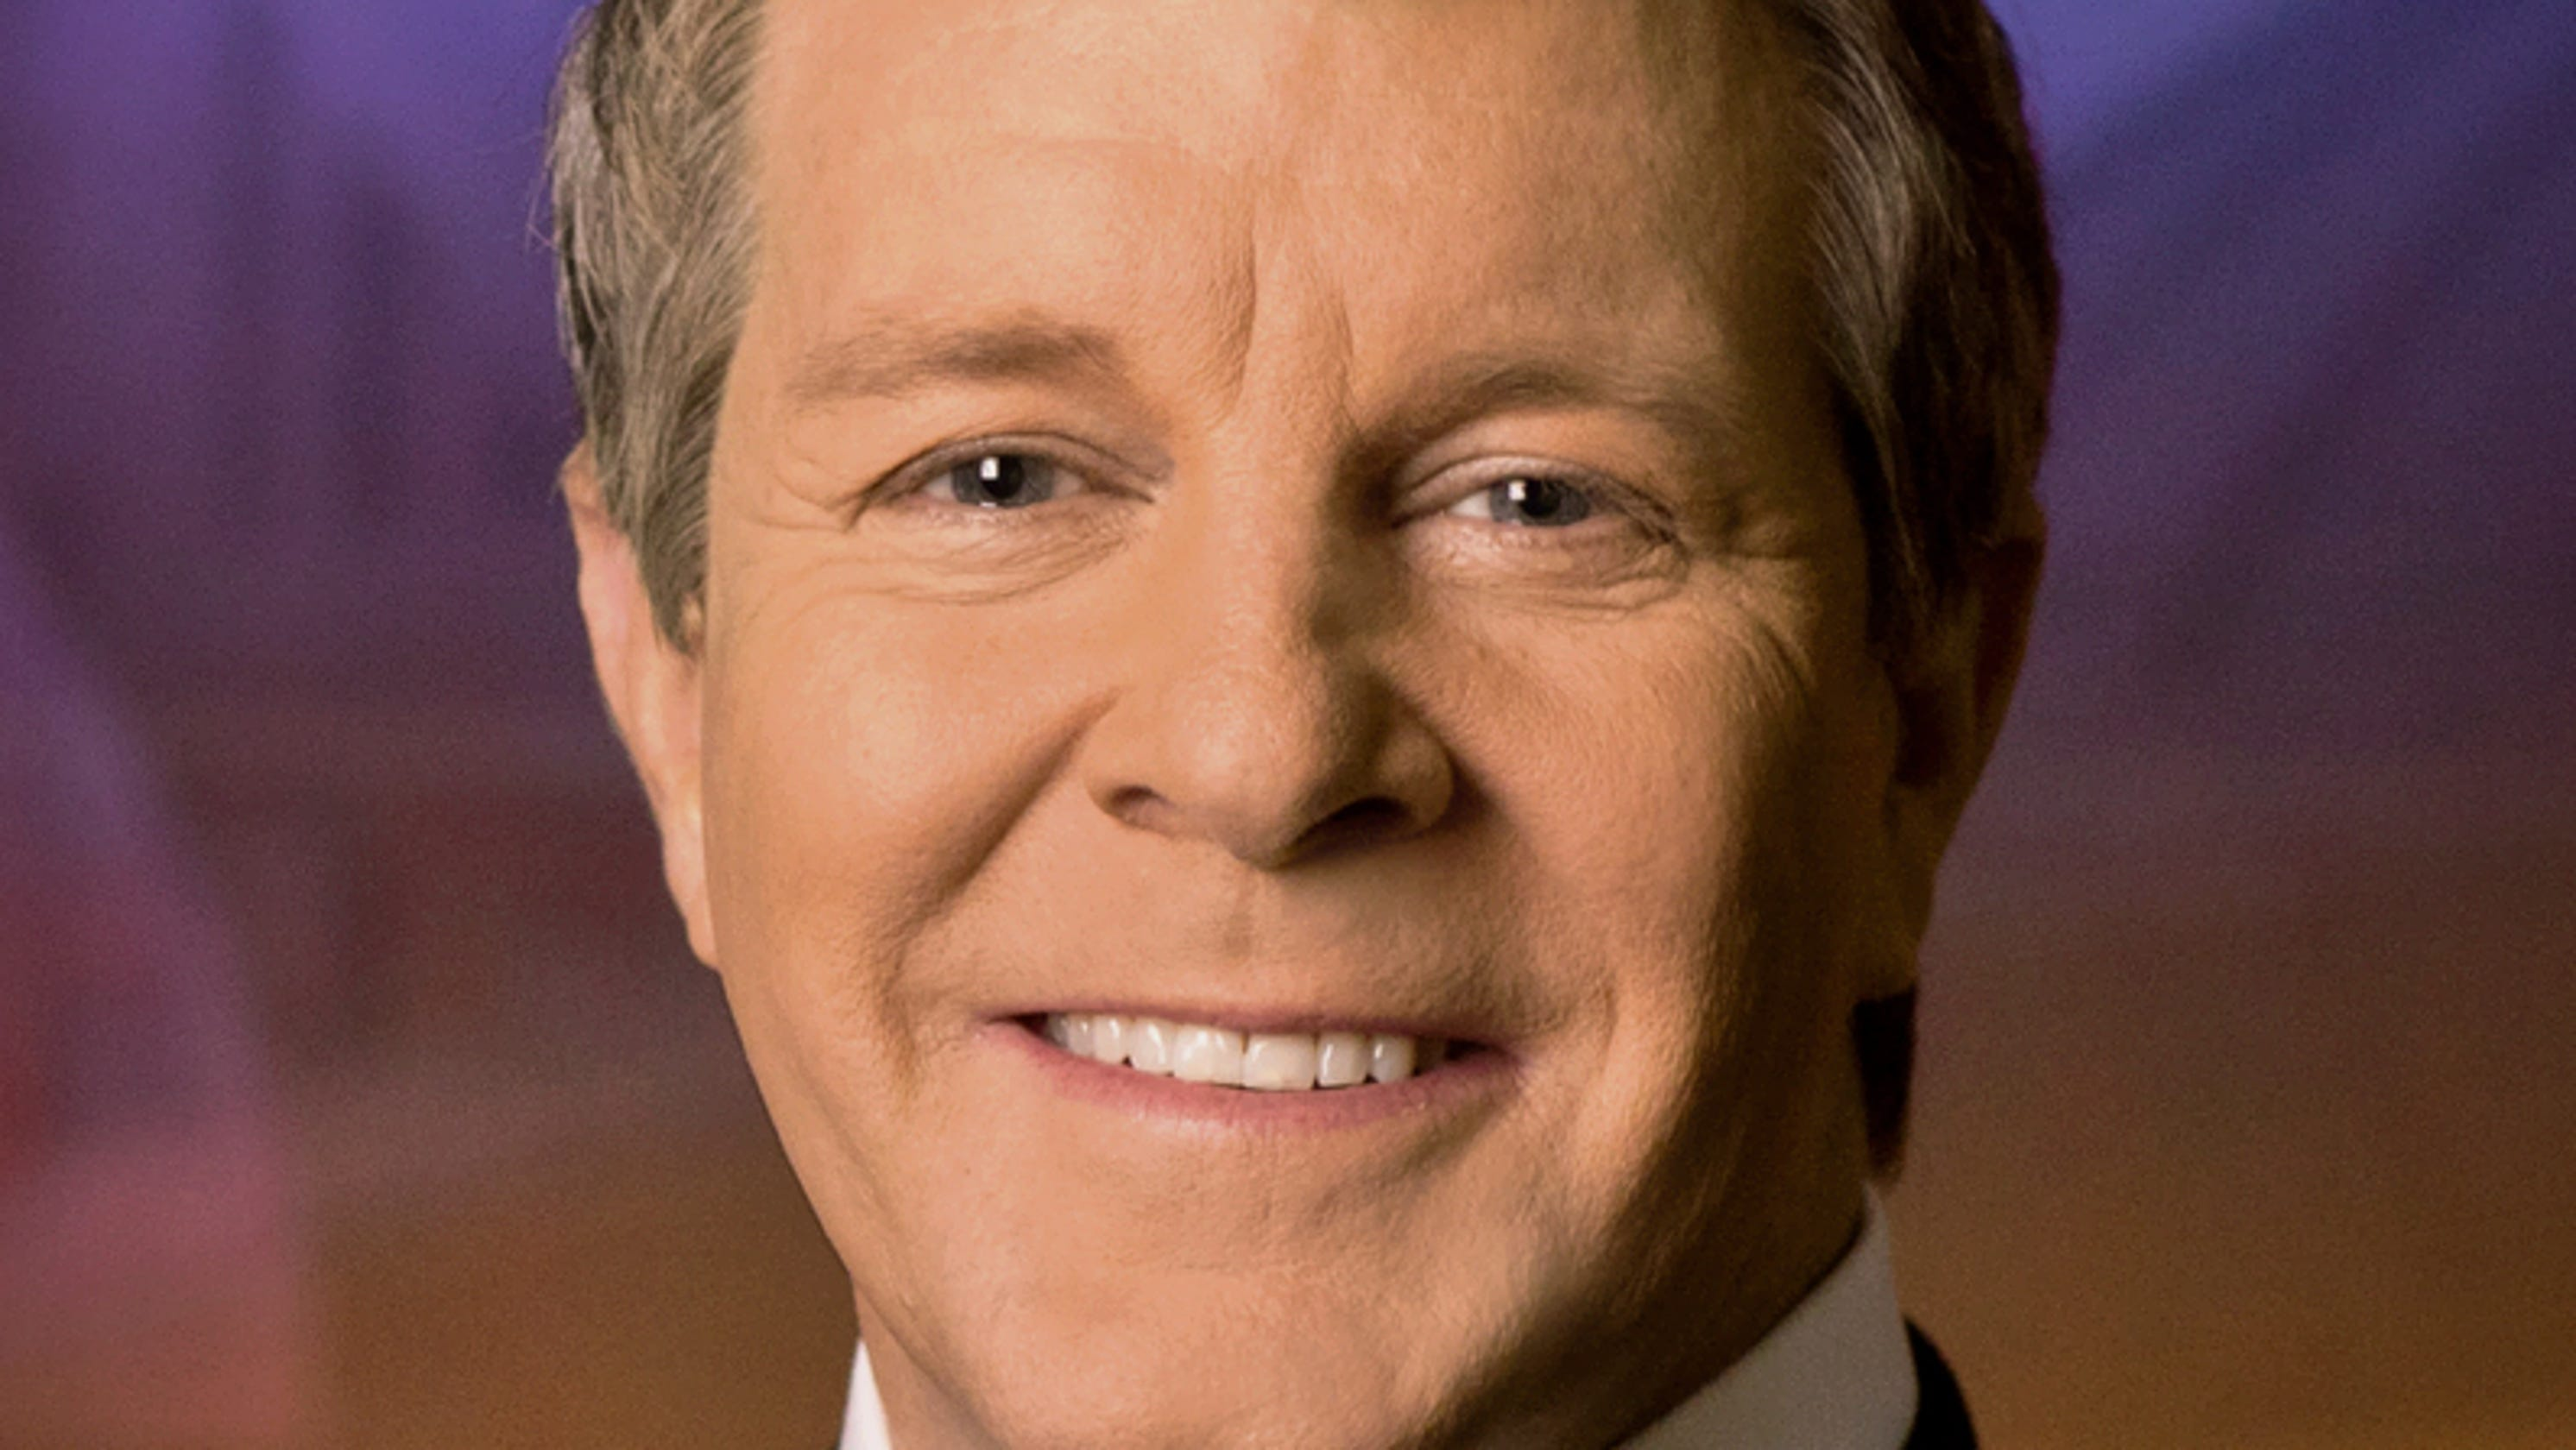 News anchor Brad Hicks has left WITI-TV (Channel 6), station